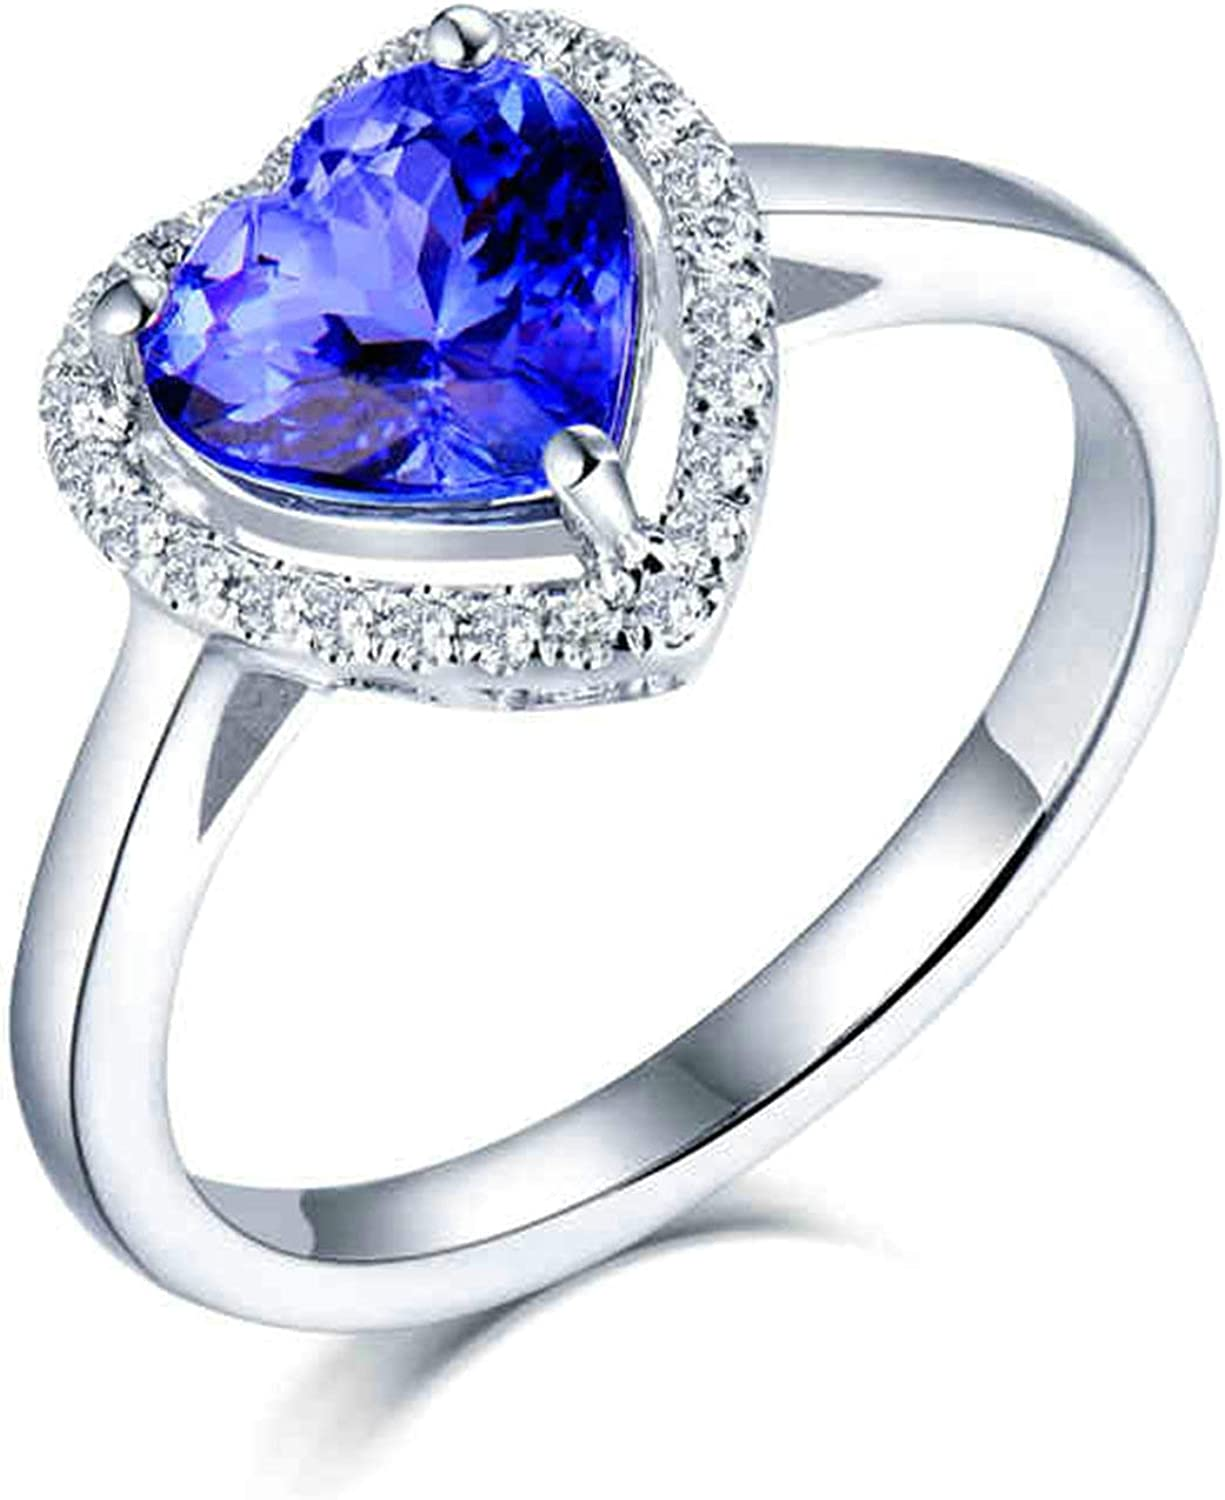 Bishilin White Gold Ring Chicago In stock Mall 750 Women Men Real St Band Simple